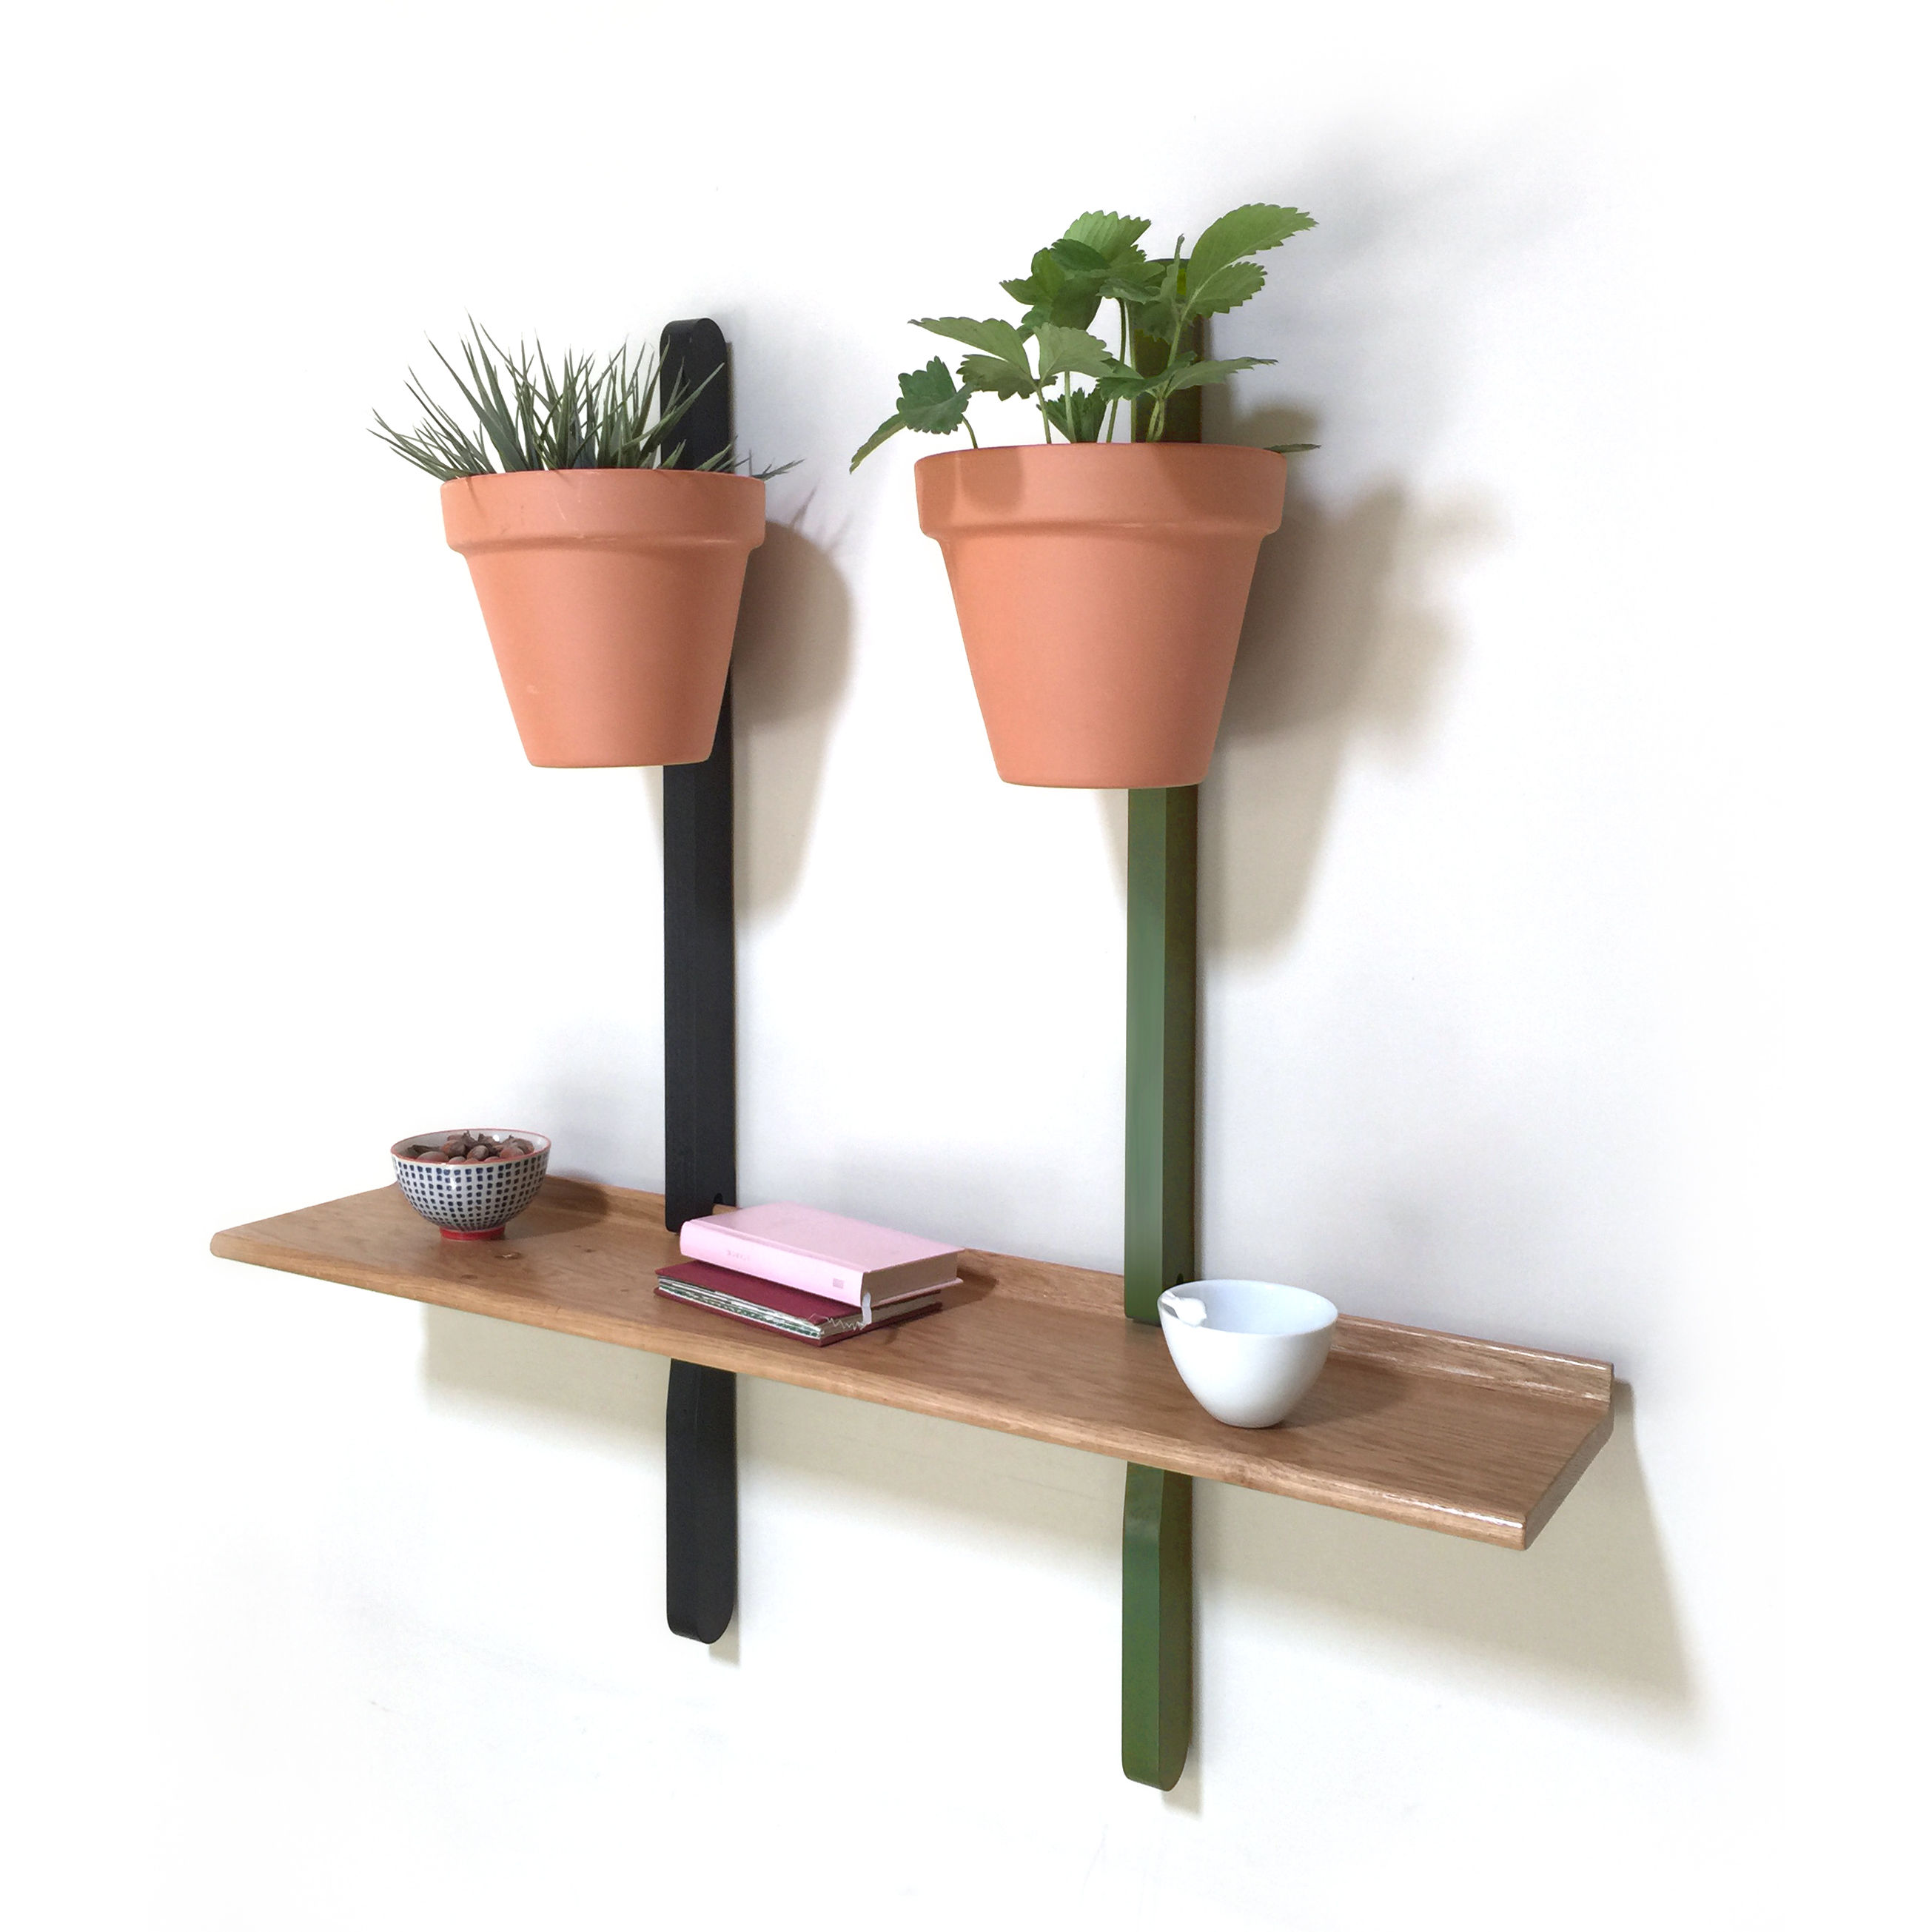 Furniture - Bookcases & Bookshelves - XPOT Shelf - / 1 right shelf, L 100 cm + 2 supports H 100 cm by Compagnie - Oak / Fixations: black & green - Varnished solid oak